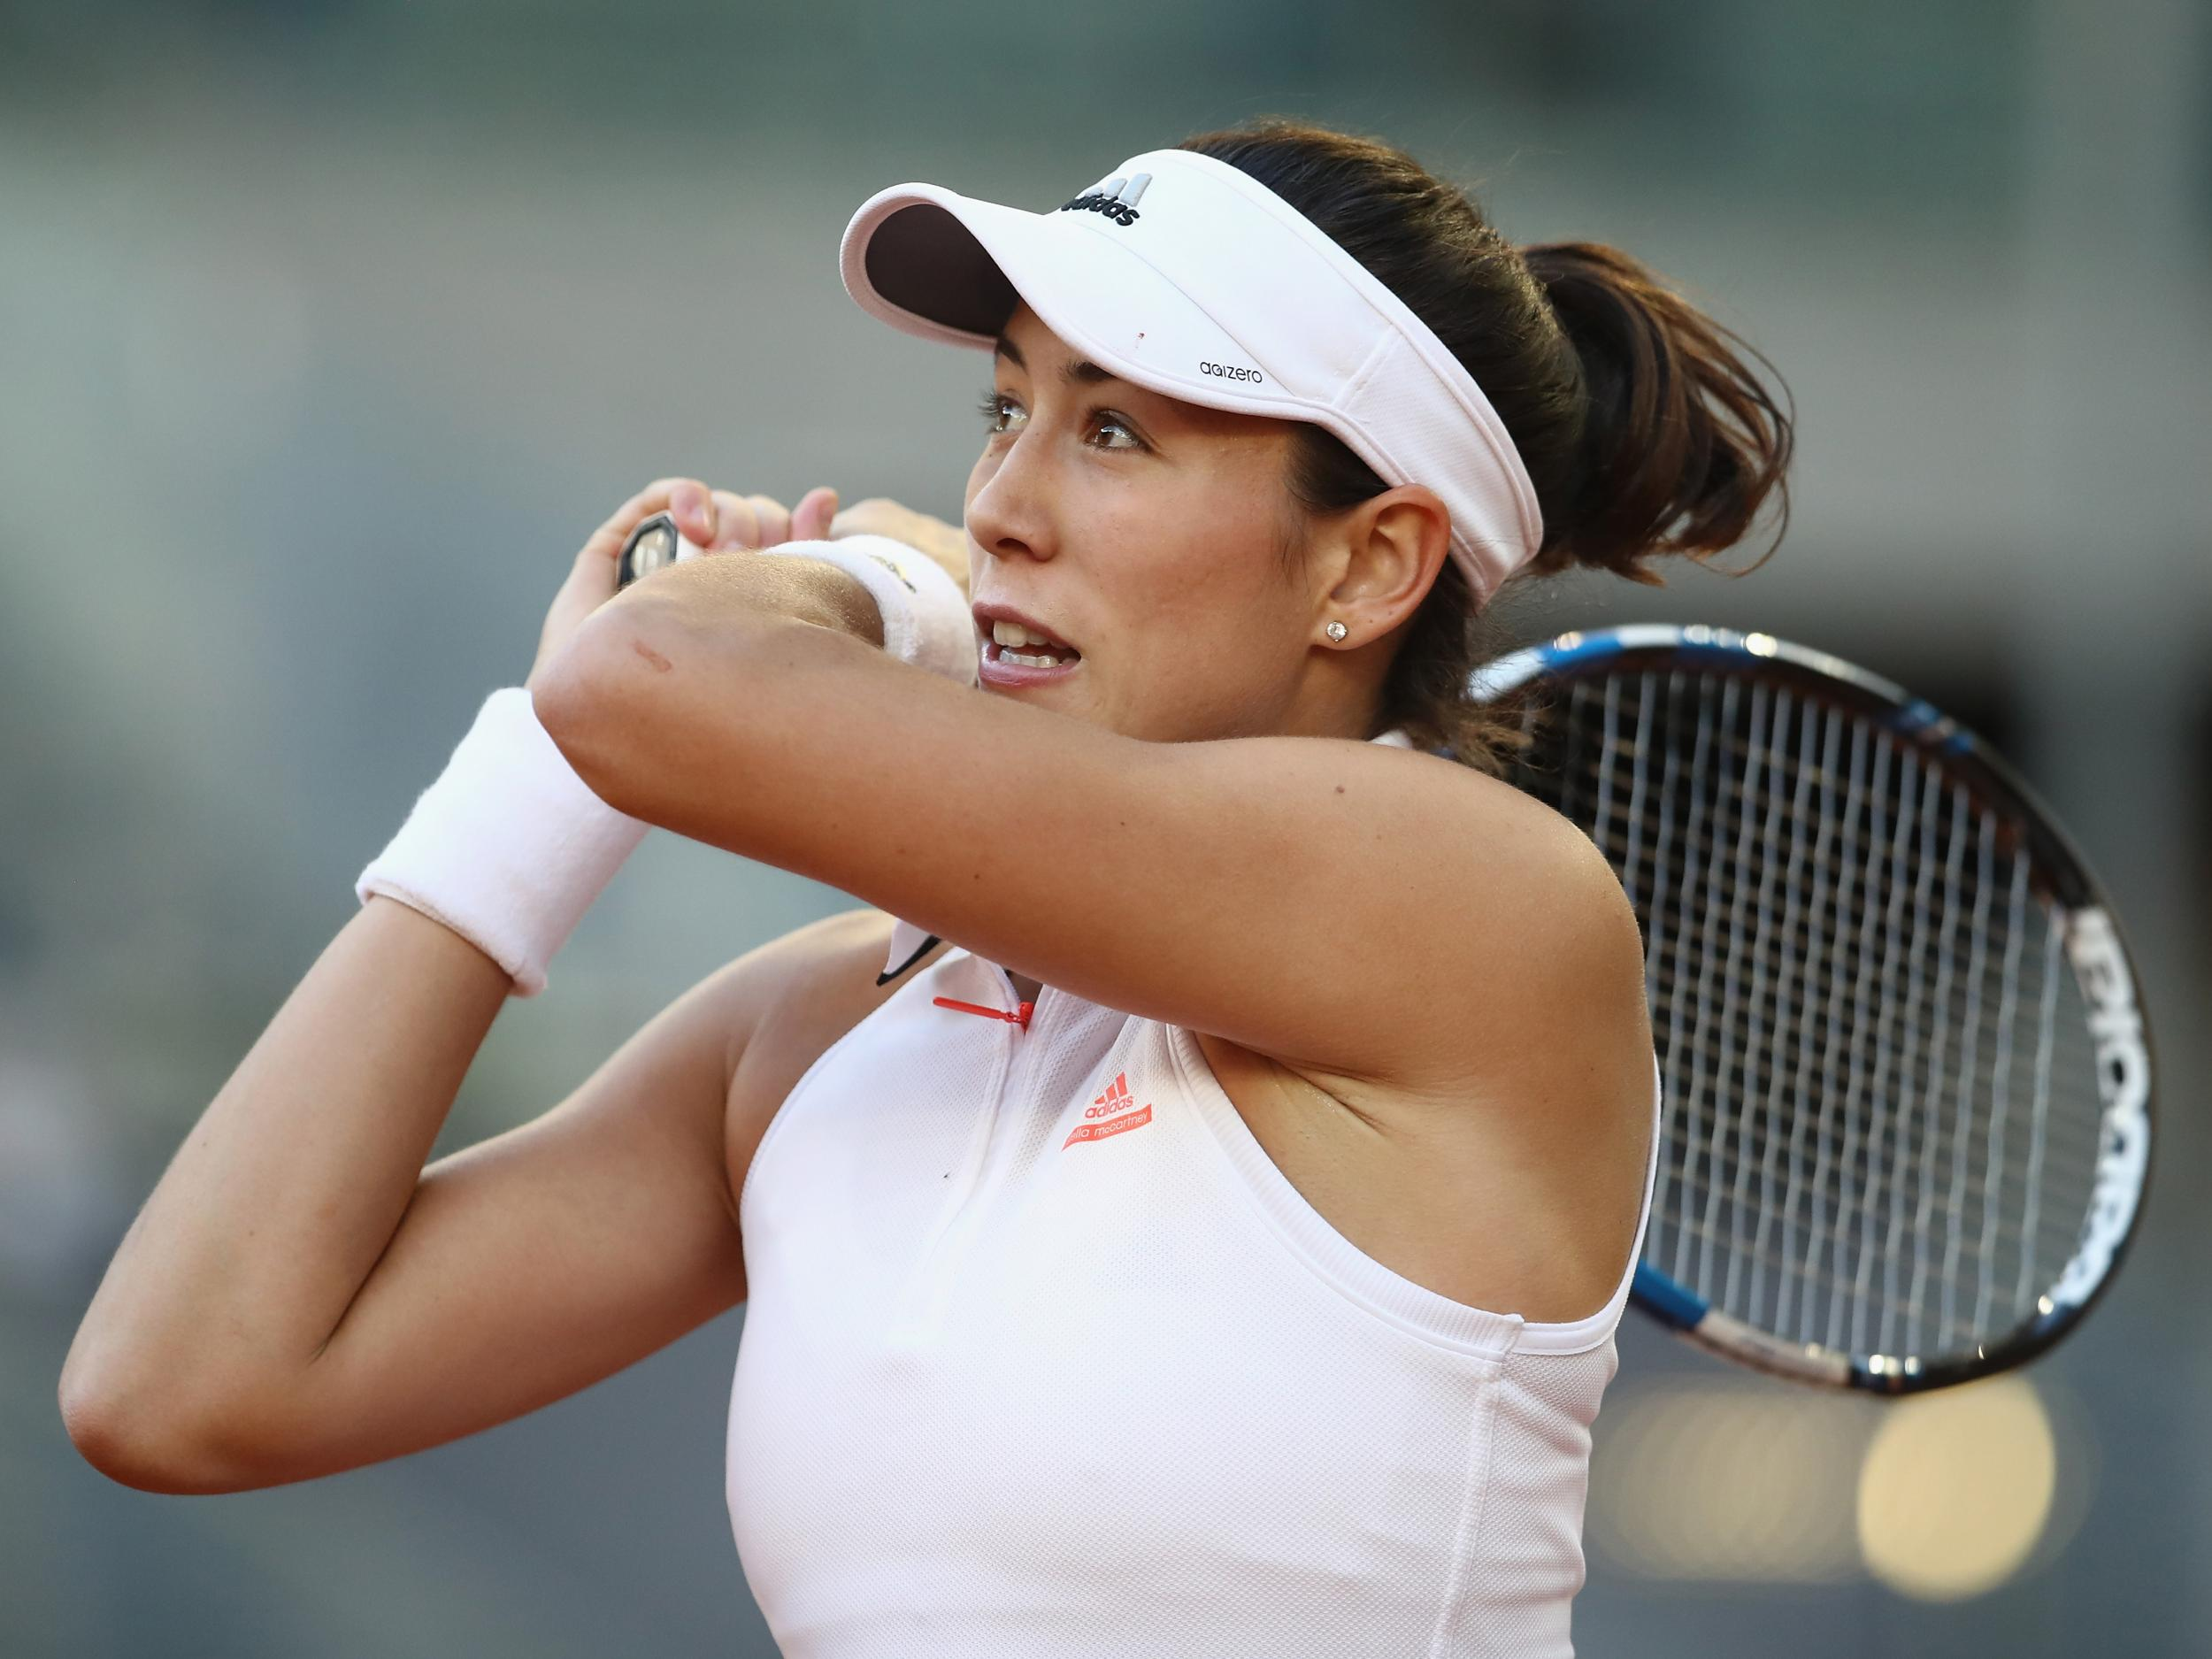 Injury scare for reigning Roland-Garros champion Garbine Muguruza as she retires hurt from Italian Open